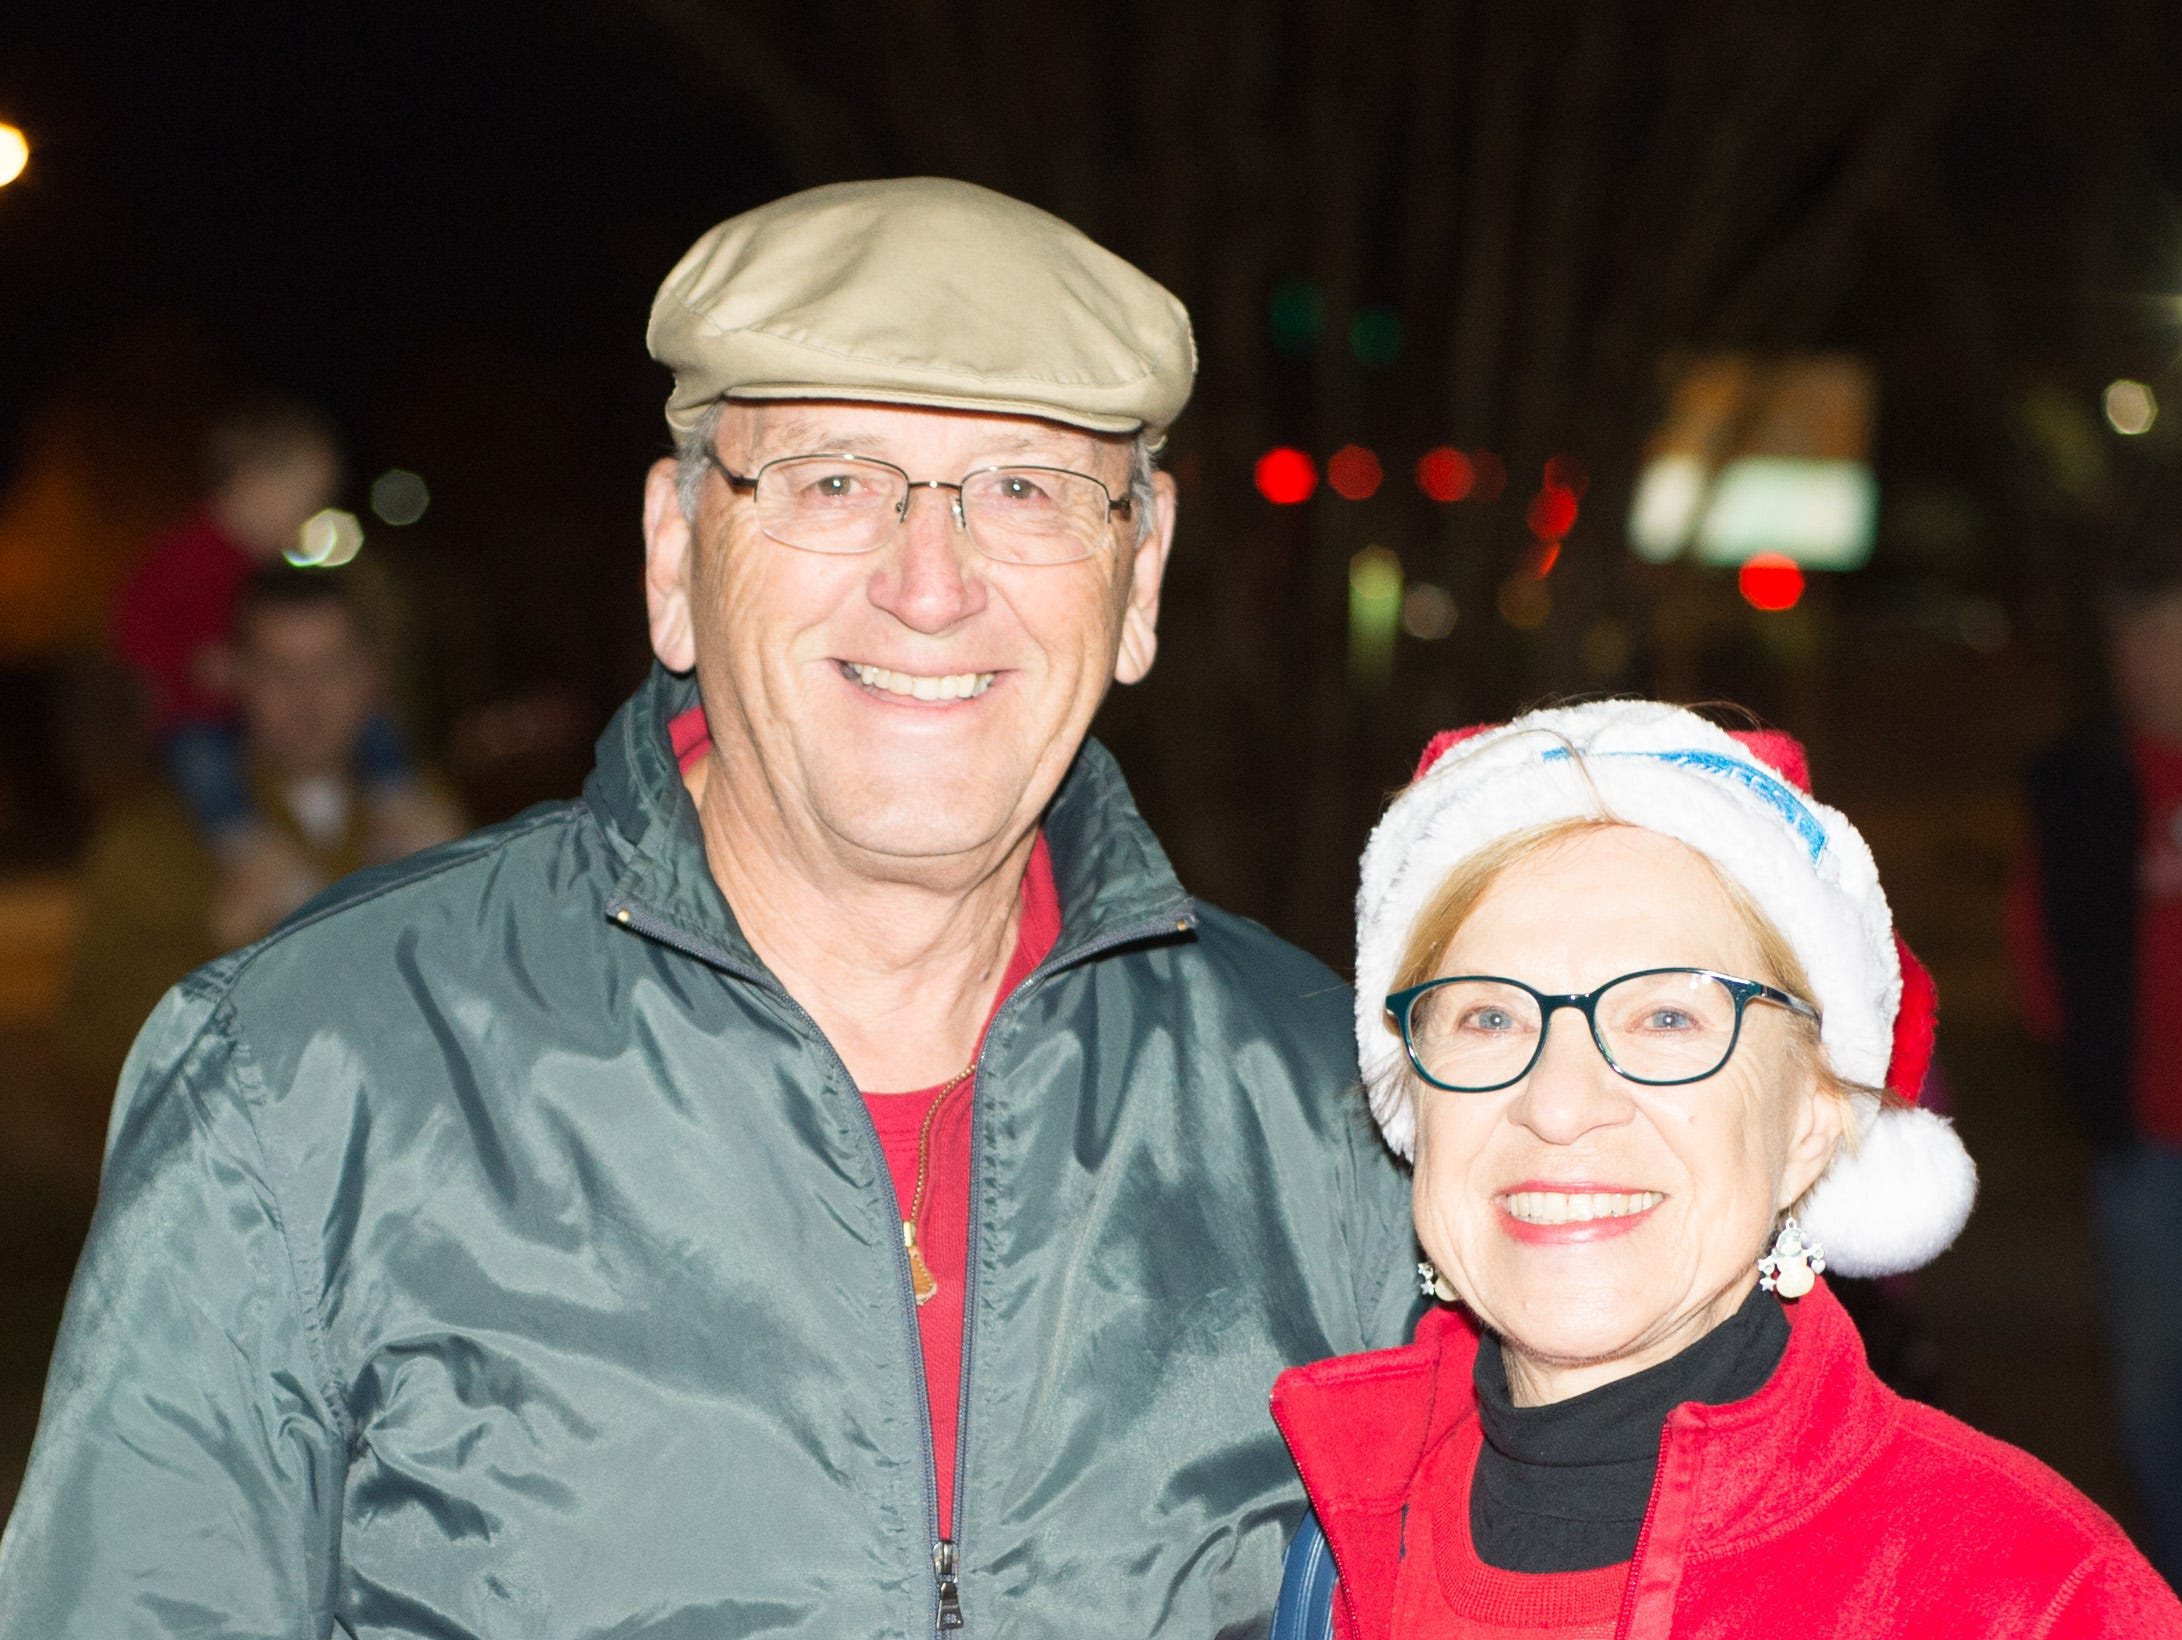 Anthony and Irene Calderon have fun during the Hendersonville HolidayFest Annual Tree Lighting Ceremony at Memorial Park on Sunday, Nov. 25.